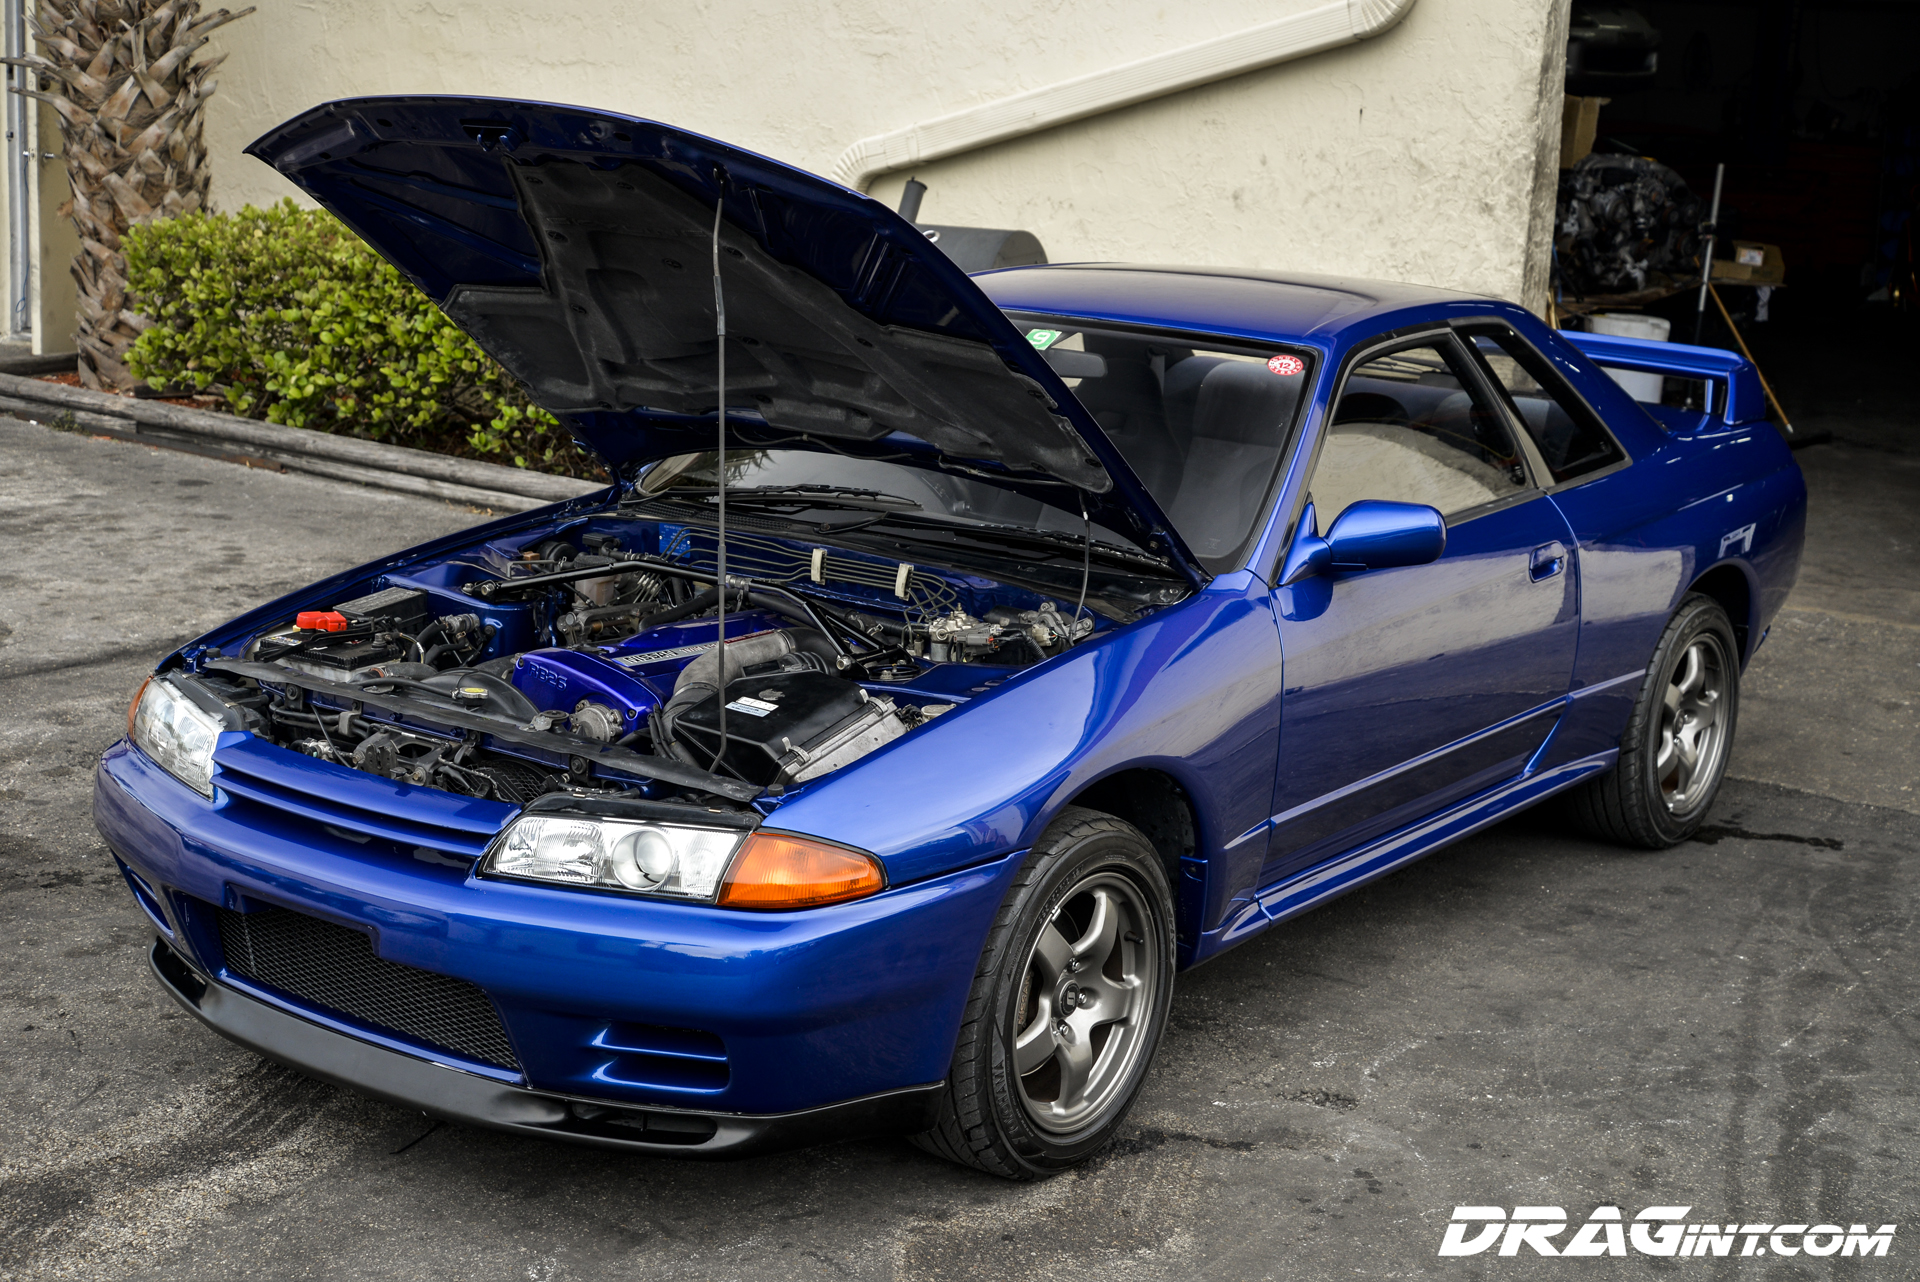 Jdm Import R32 Skyline Gtr In Best Blue Ever Drag